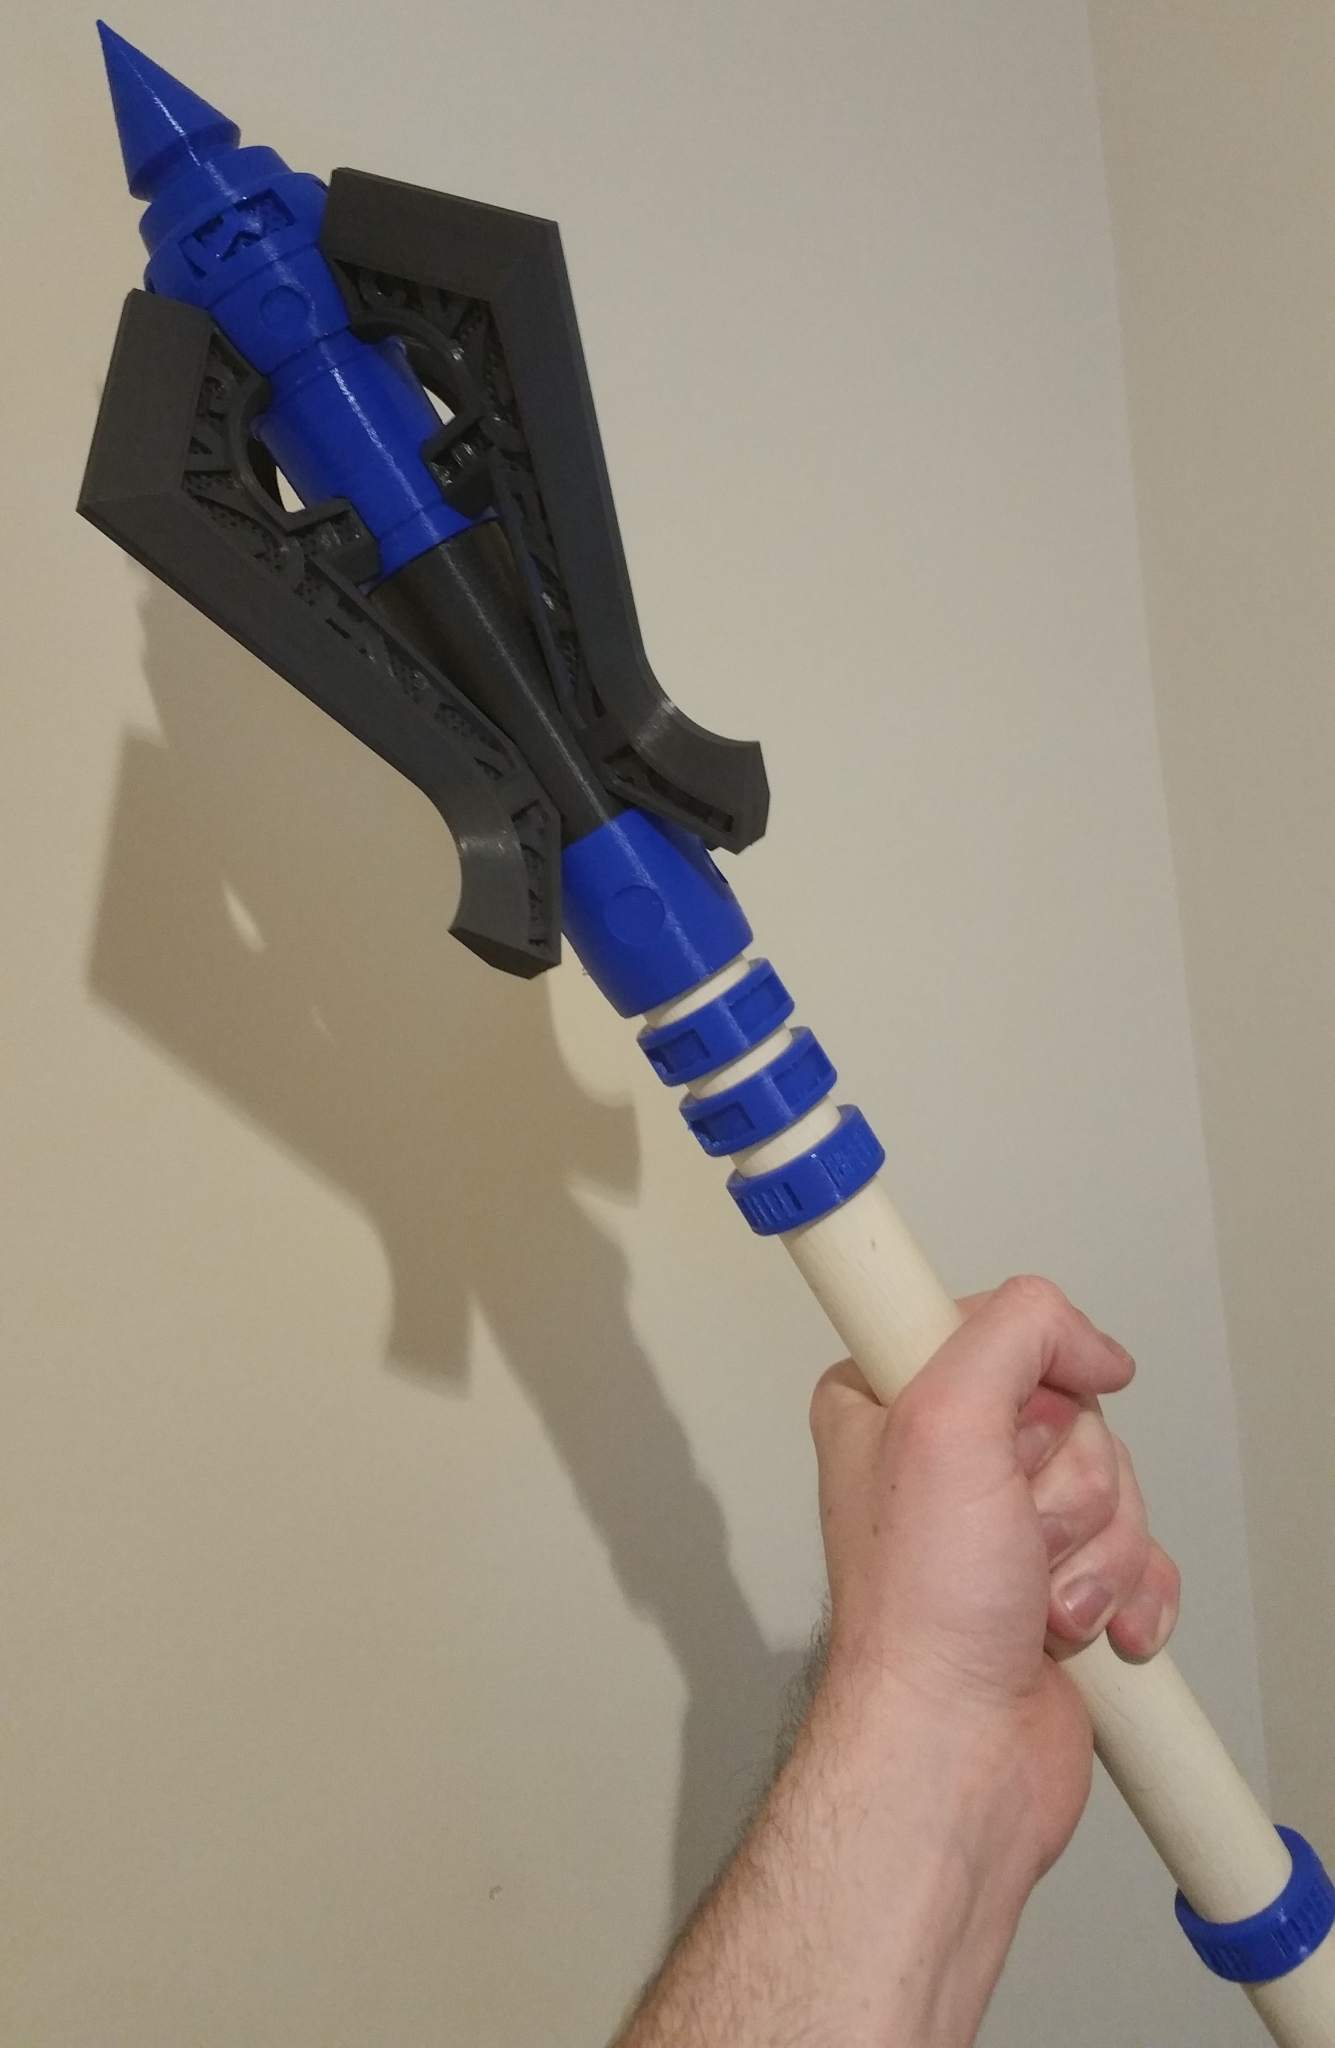 The 3D printed Skyrim Steel Mace. Image via Daniel Lilygreen on MyMiniFactory.